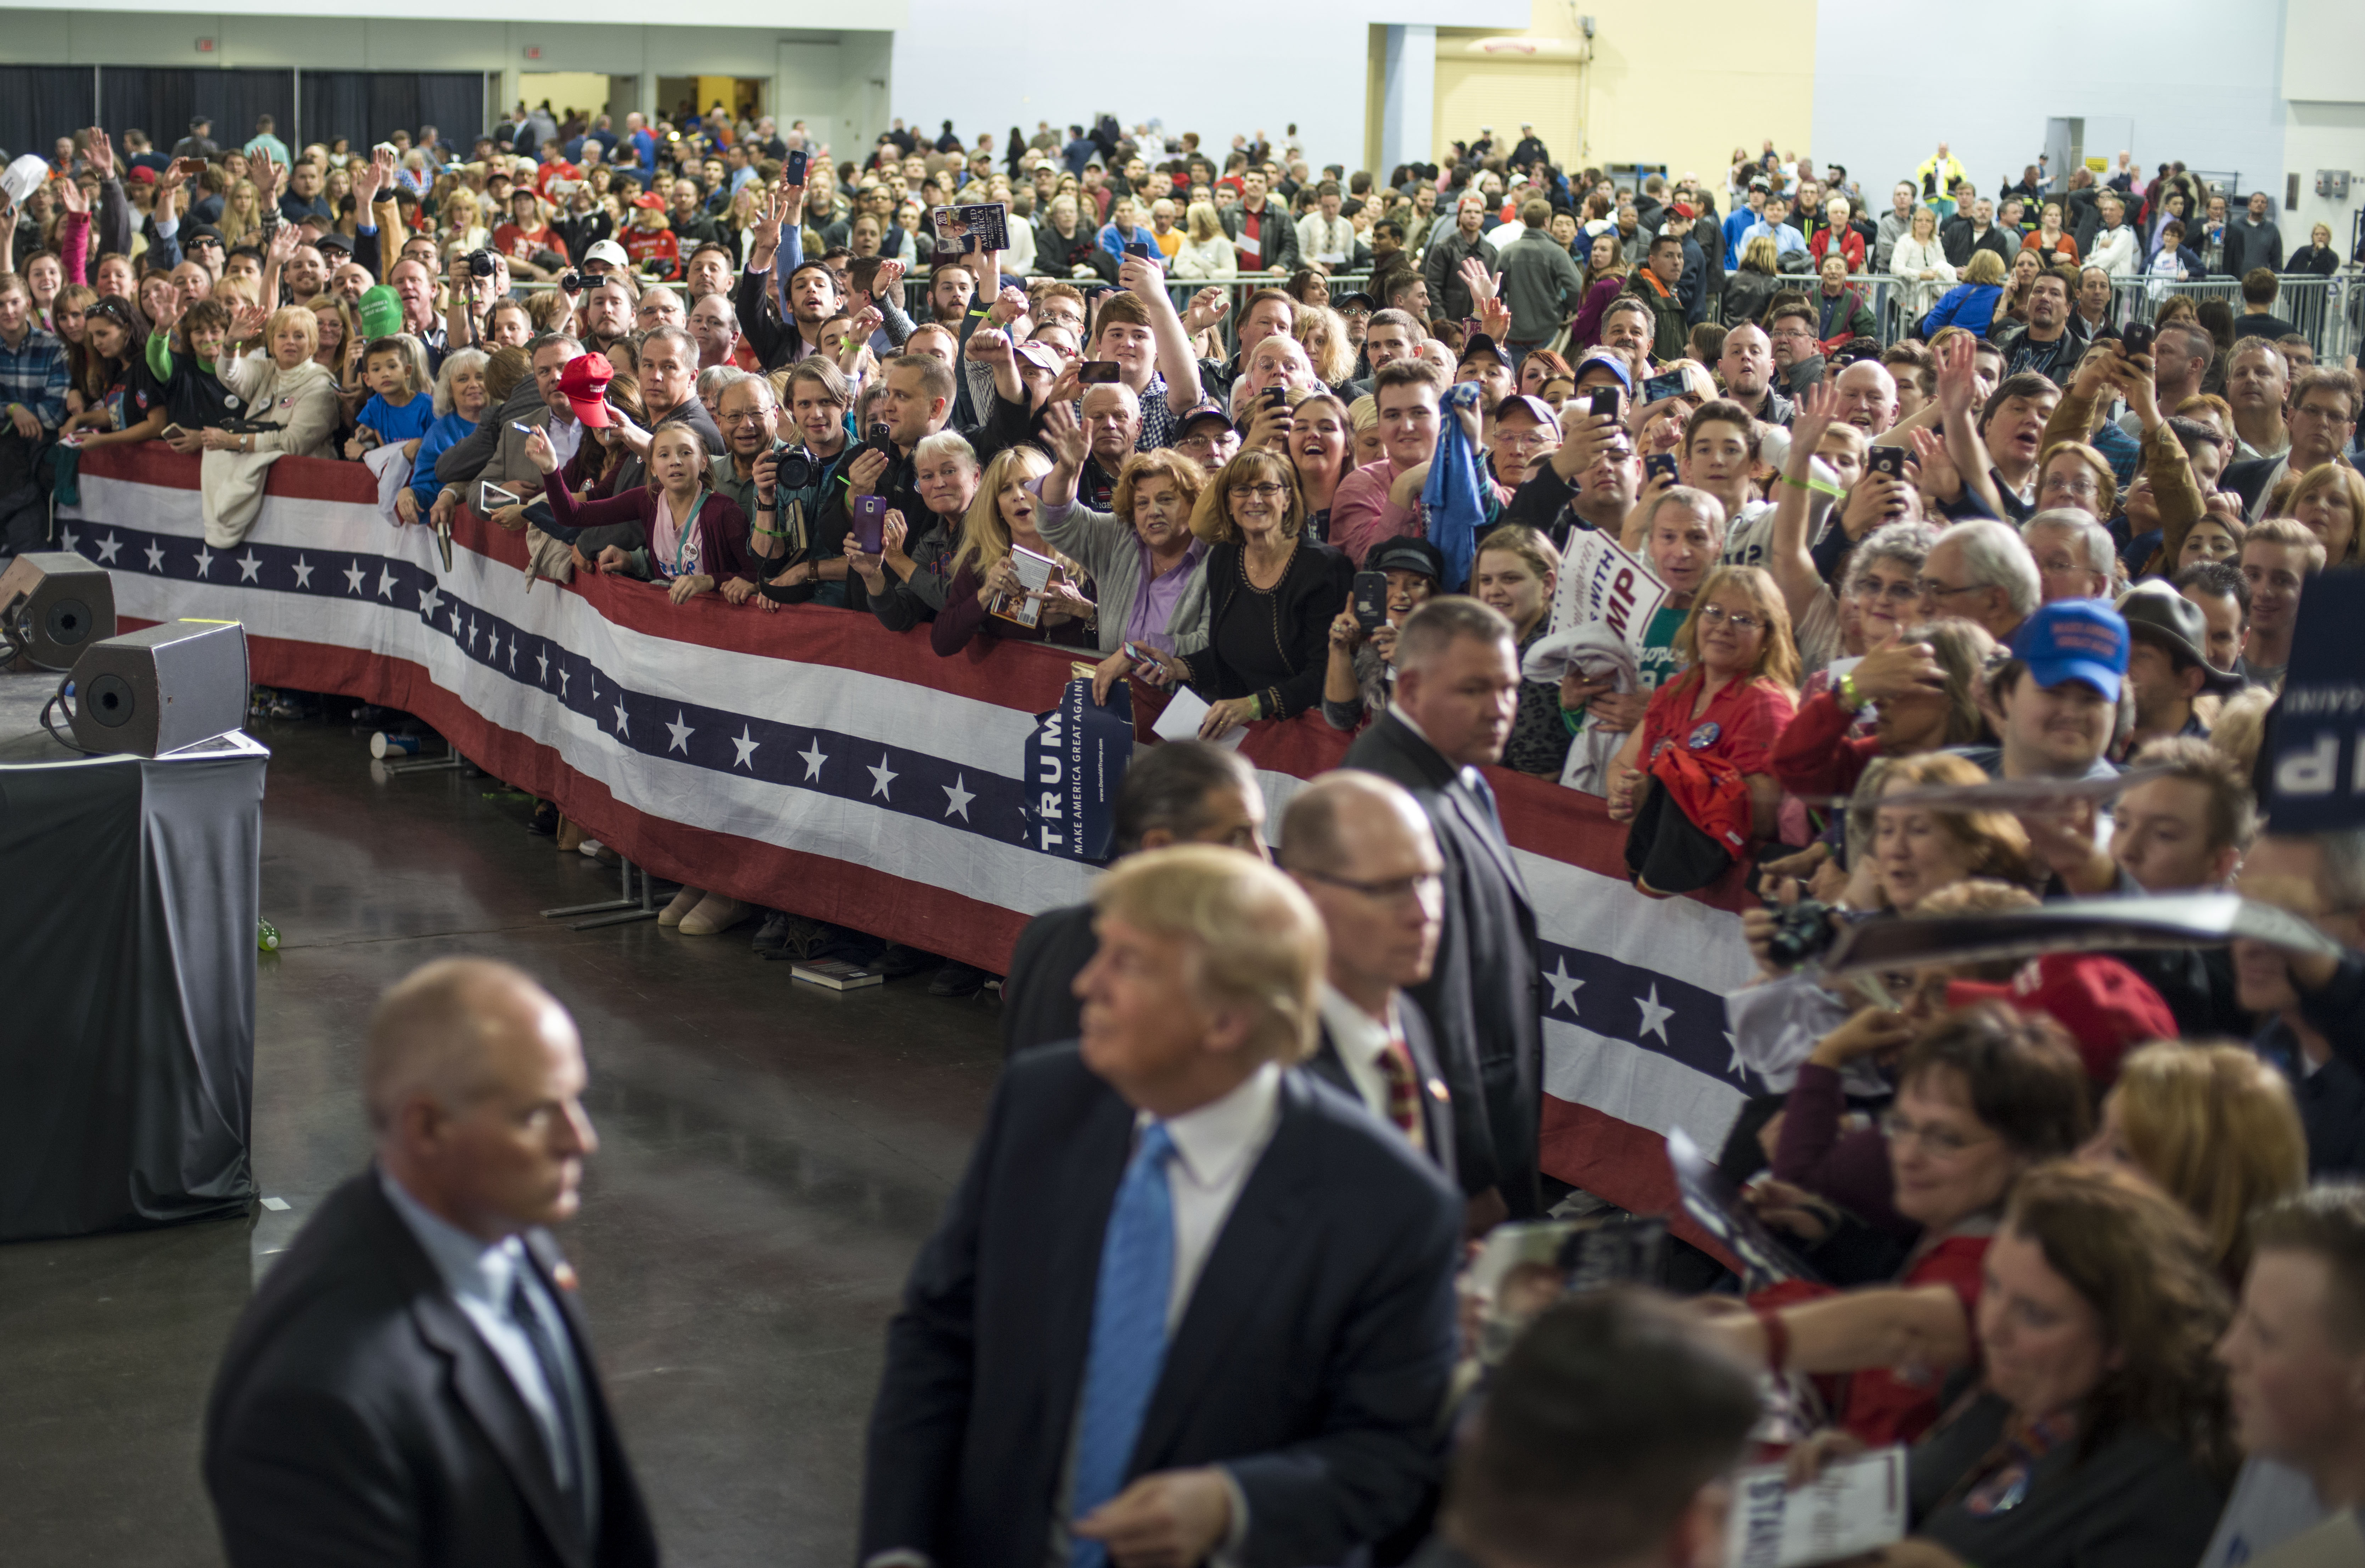 Donald Trump shakes hands and signs autographs with his supporters on Nov. 23, 2015 in Columbus, OH.